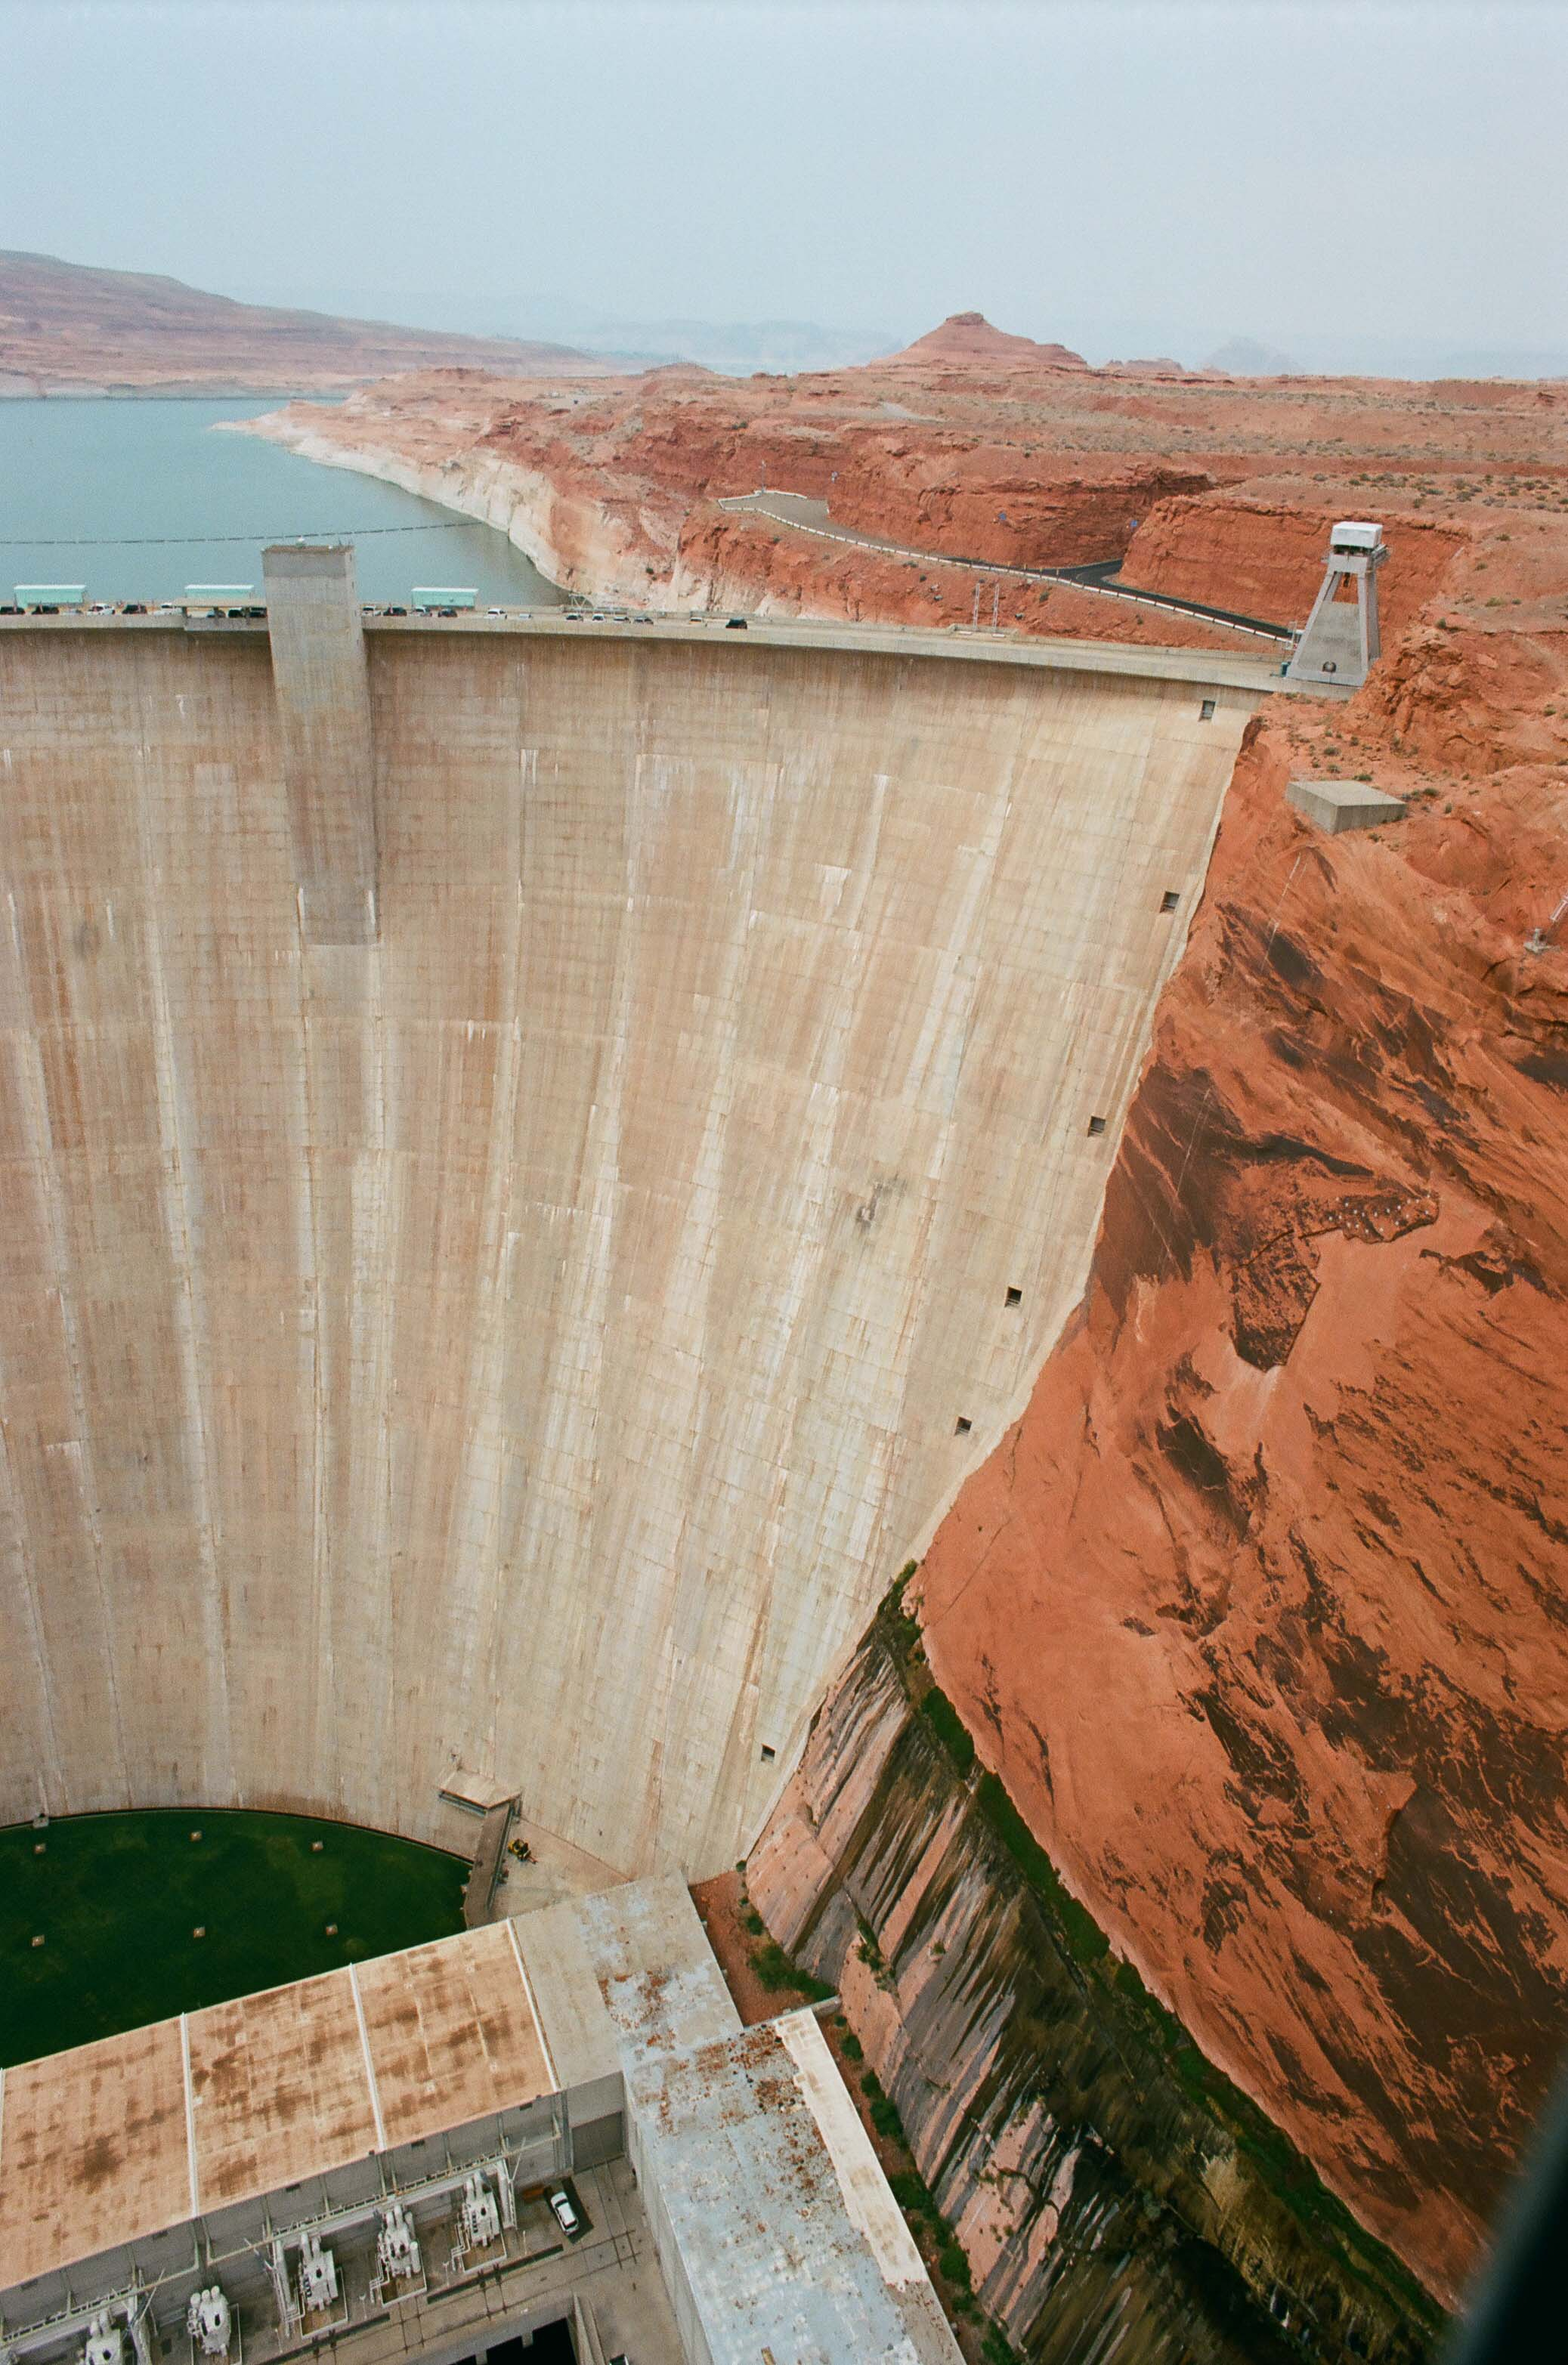 The Glen Canyon Dam which created Lake Powell and submerged 110 miles of scenic canyons and made Rainbow Bridge, a Sacred Navajo arch, only accessible by boat